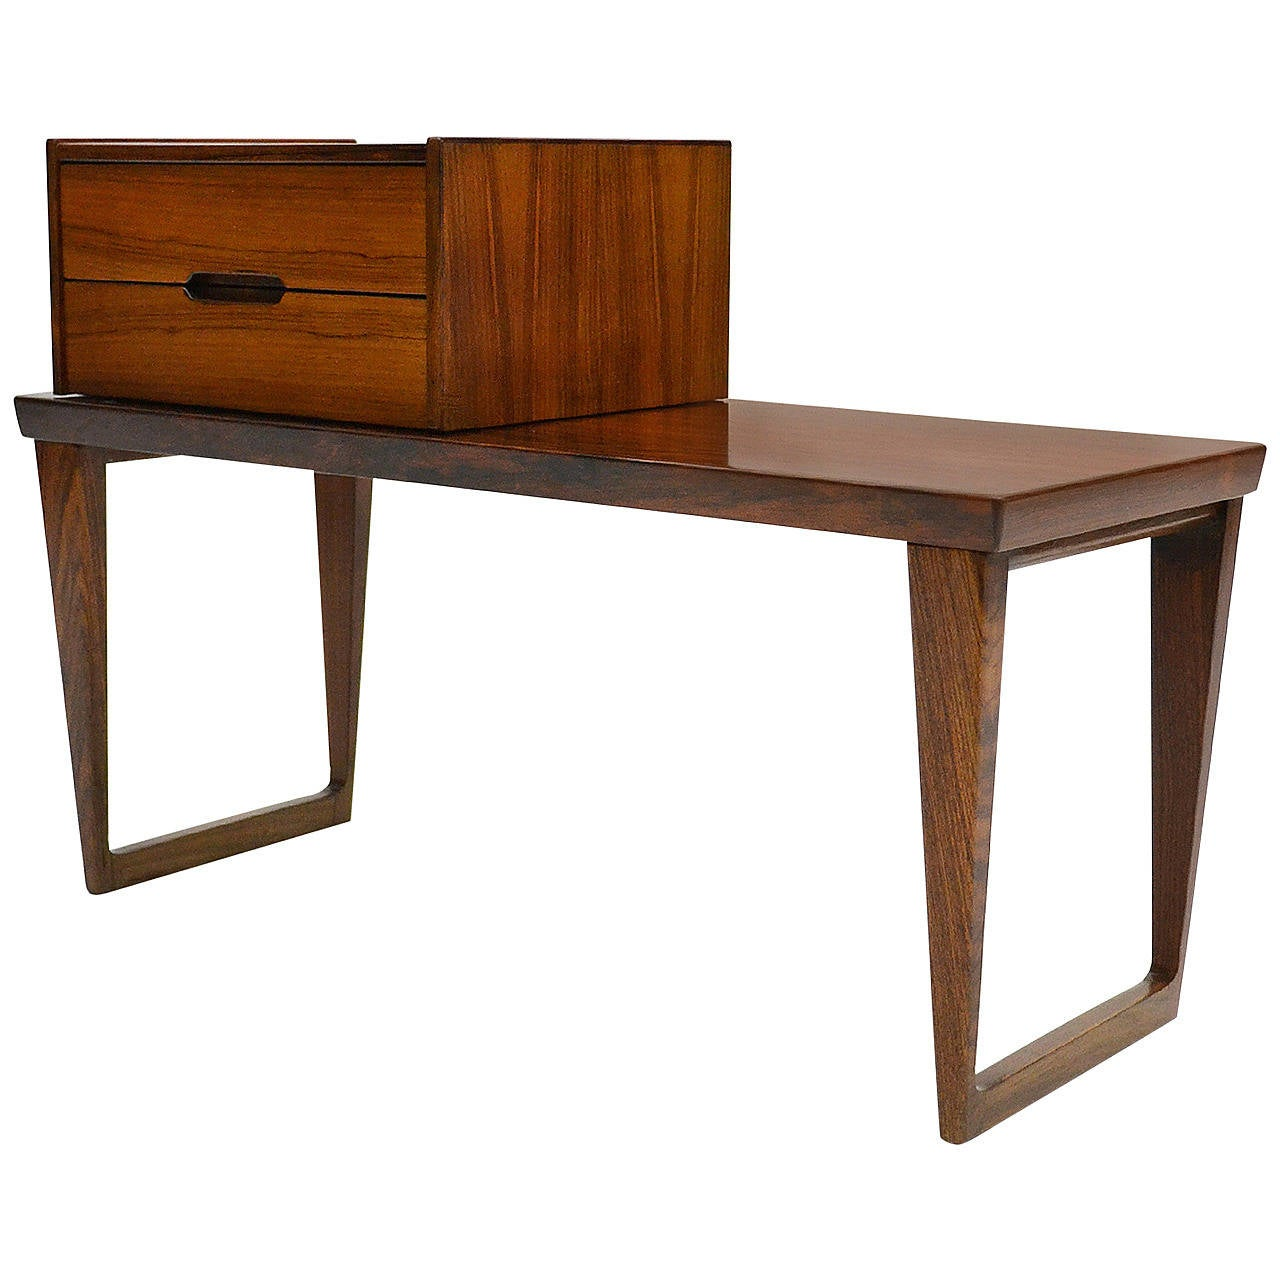 Kai Kristiansen Rosewood Bench And Storage Box At 1stdibs